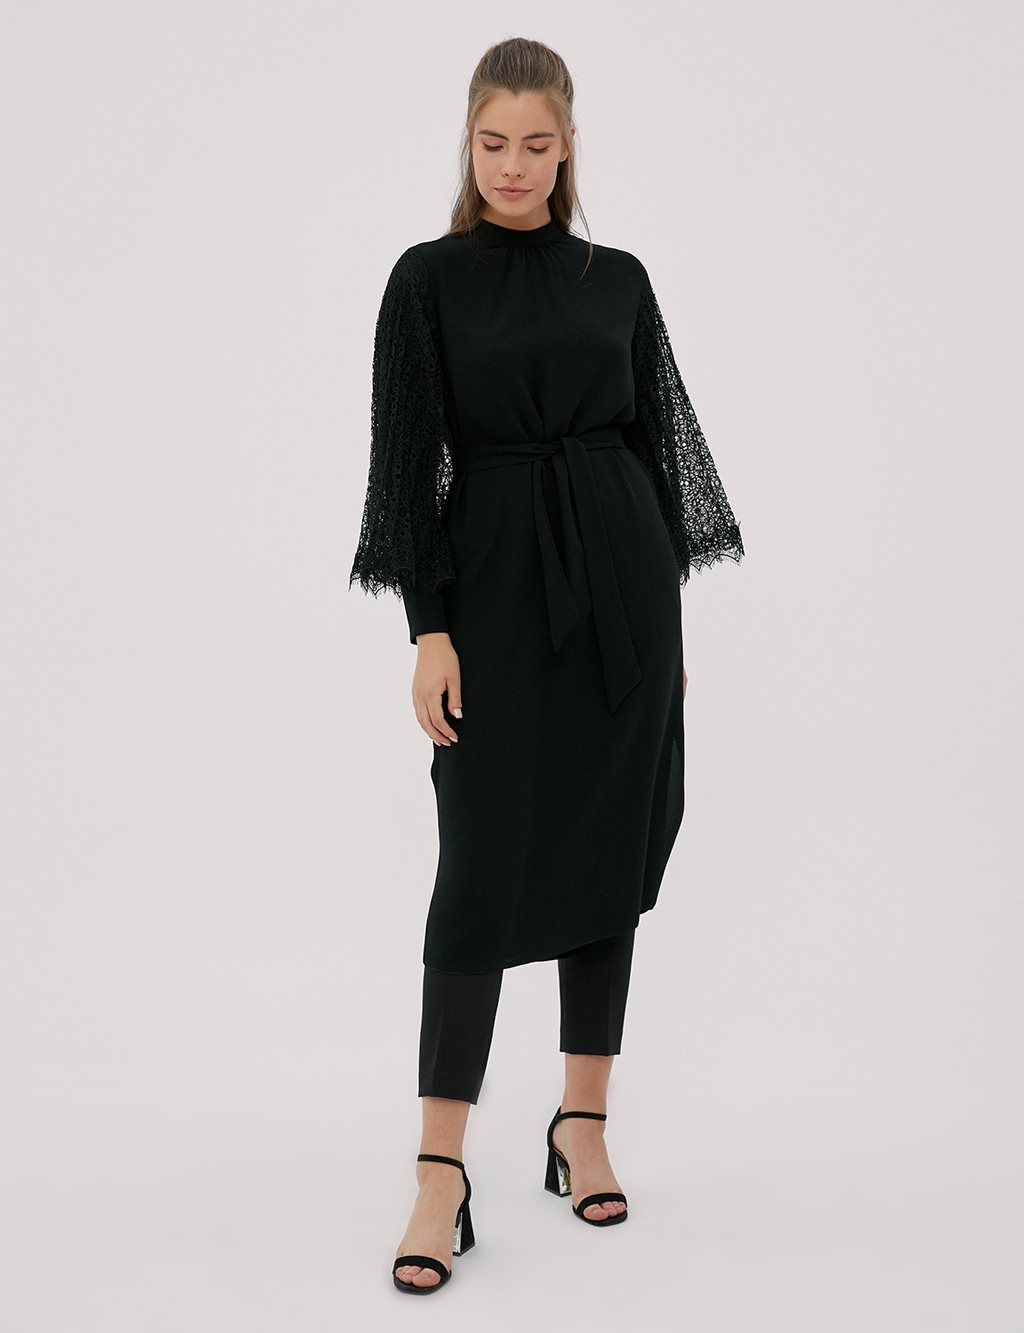 Long Tunic With Laced Sleeves Black A20 21020